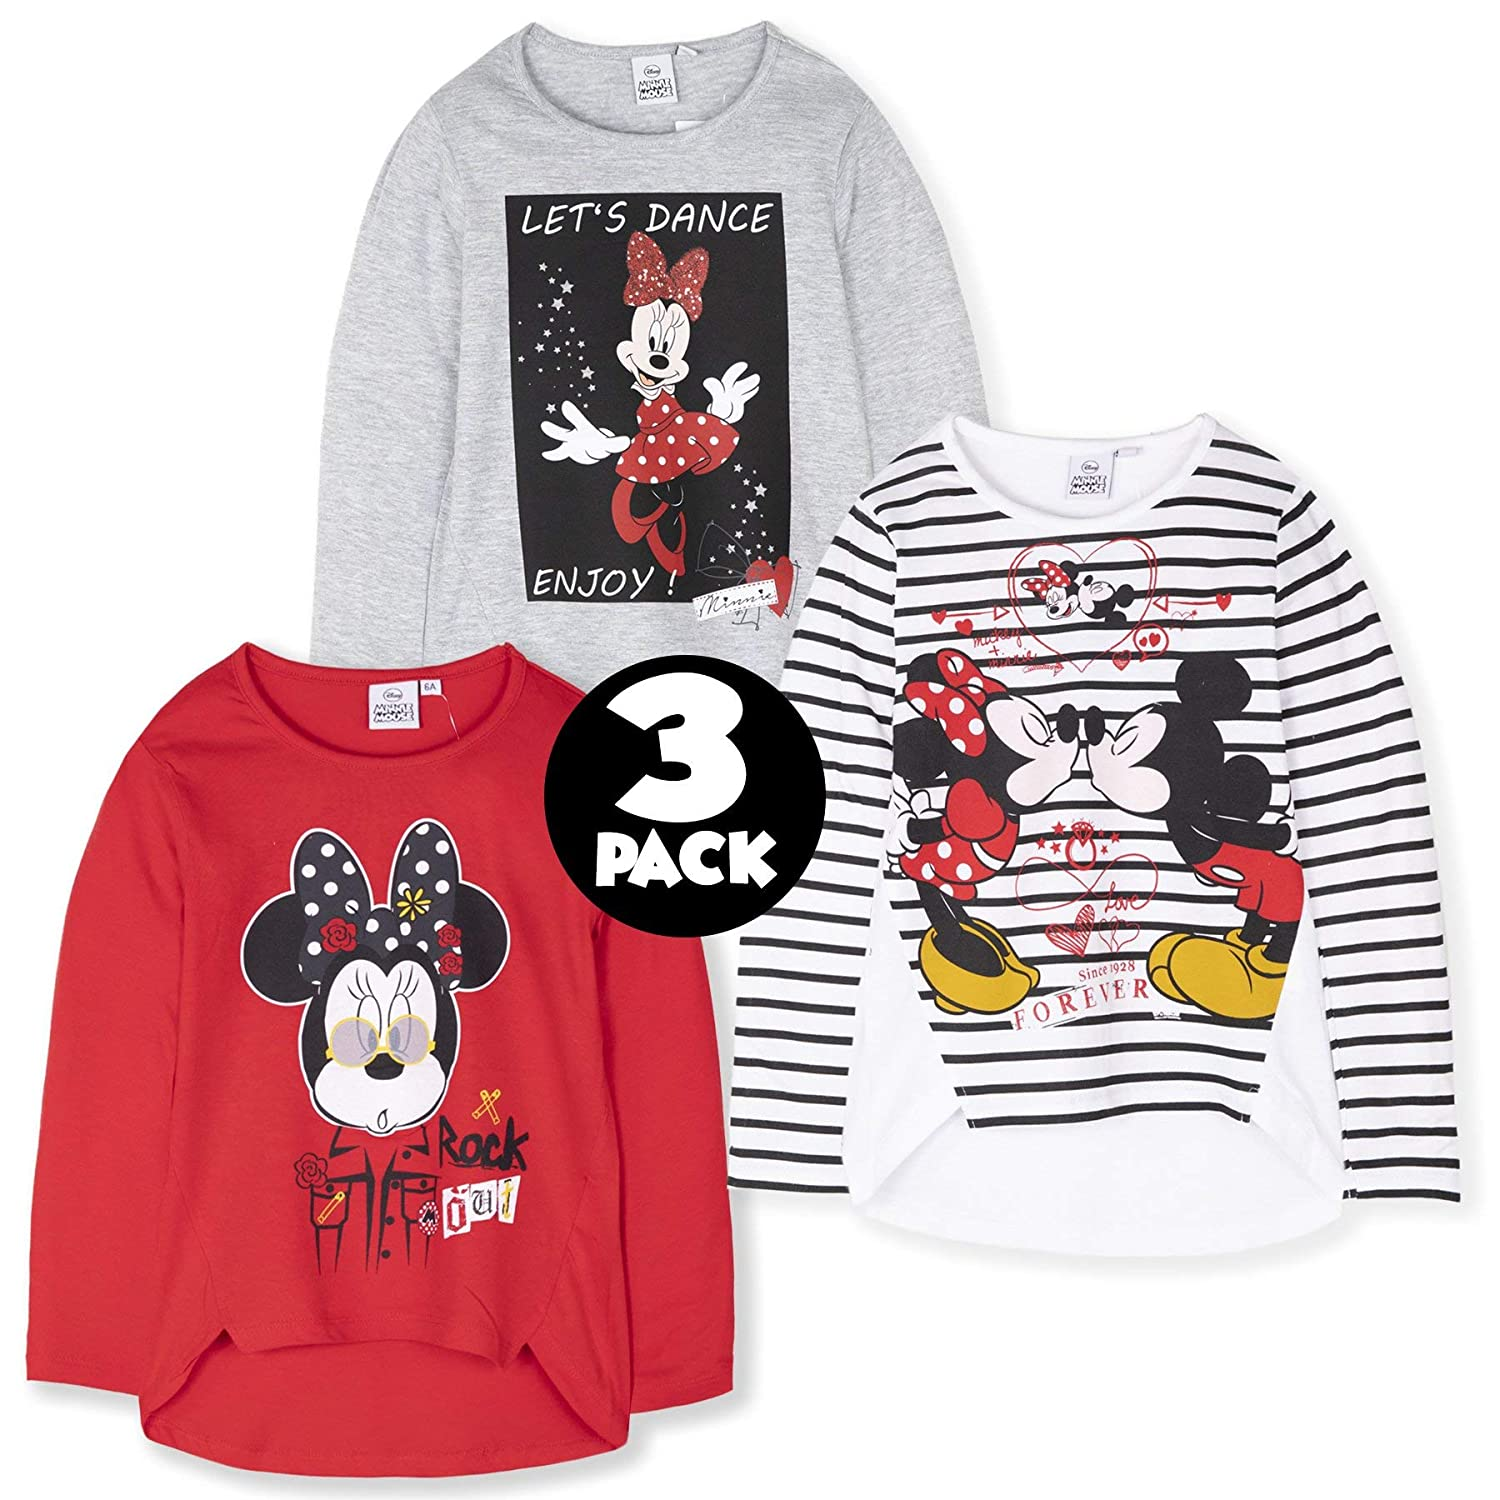 Disney Mickey Minnie Mouse 3-Pack 100/% Cotton Minions Multi Pack of Licensed Long Sleeve Character Tops for Boys Girls 2-Pack Frozen Paw Patrol